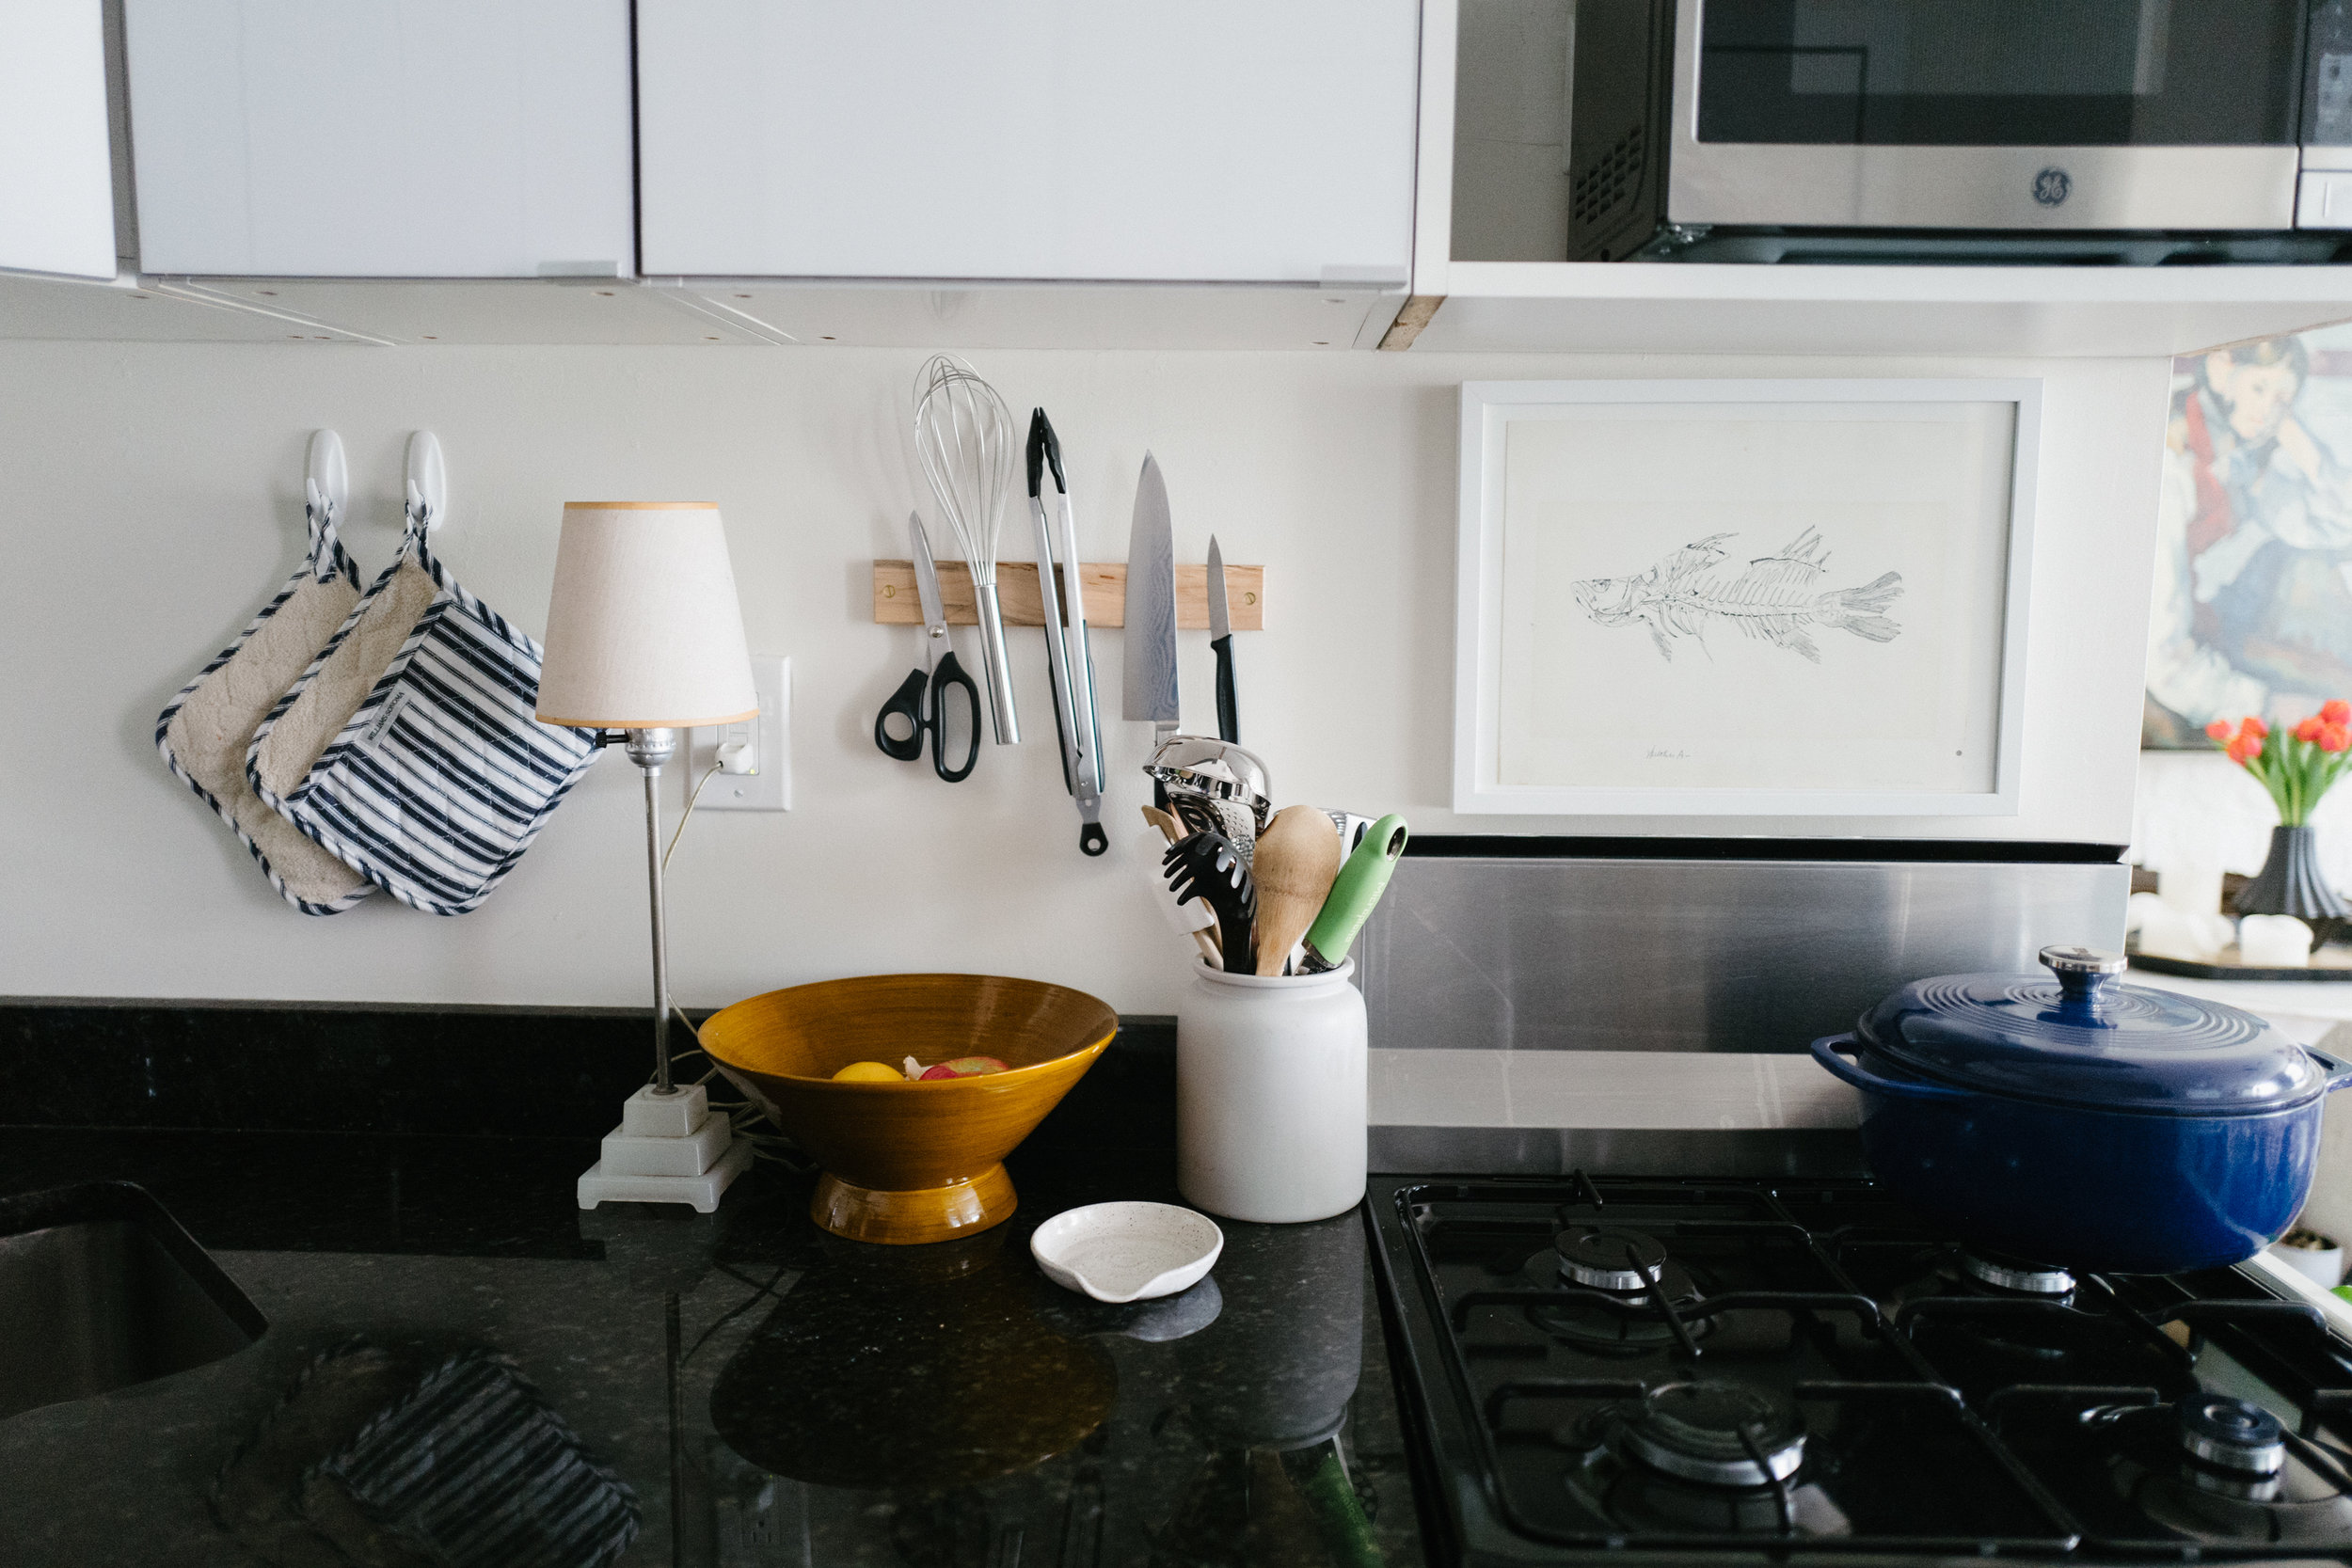 Blue dutch oven:  Amazon . Lamp: vintage. Magnetic knife strip:  Benchcrafted . Utensil holder:  CB2 . Spoon rest:  Schoolhouse Electric . Fish print: Vintage. Pot holders:  Williams Sonoma .